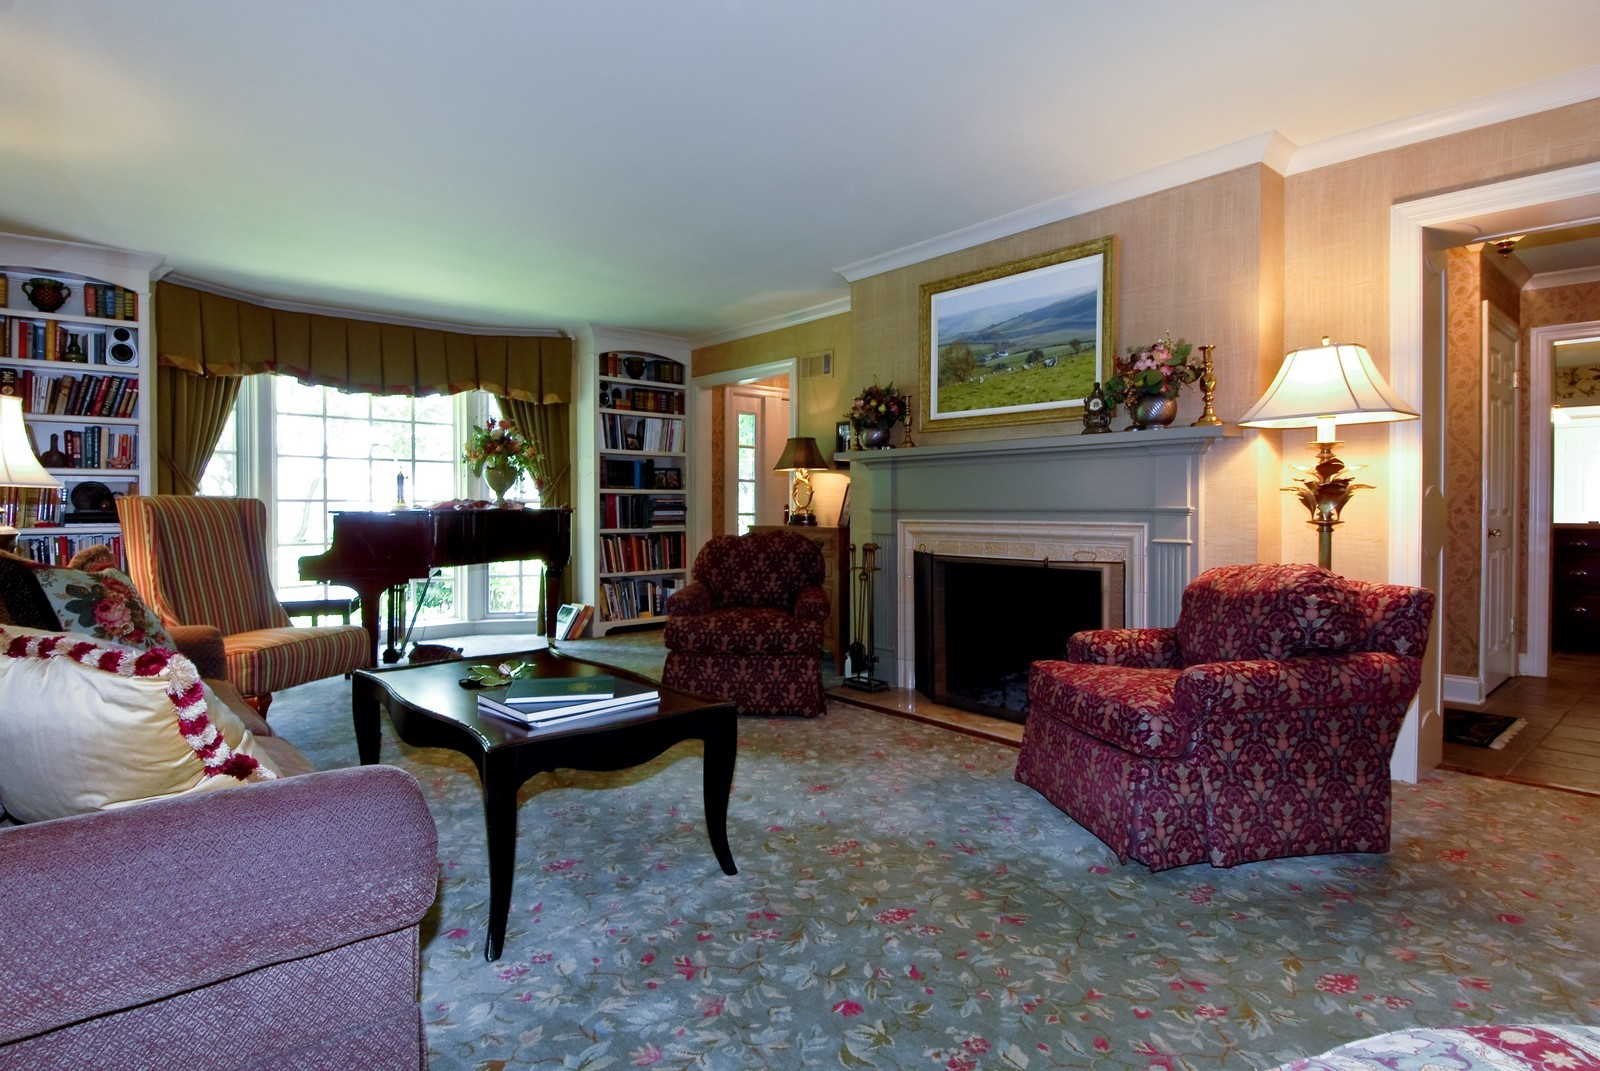 Real Estate Photography - 417 S McKinley, St Charles, IL, 60174 - Living Room